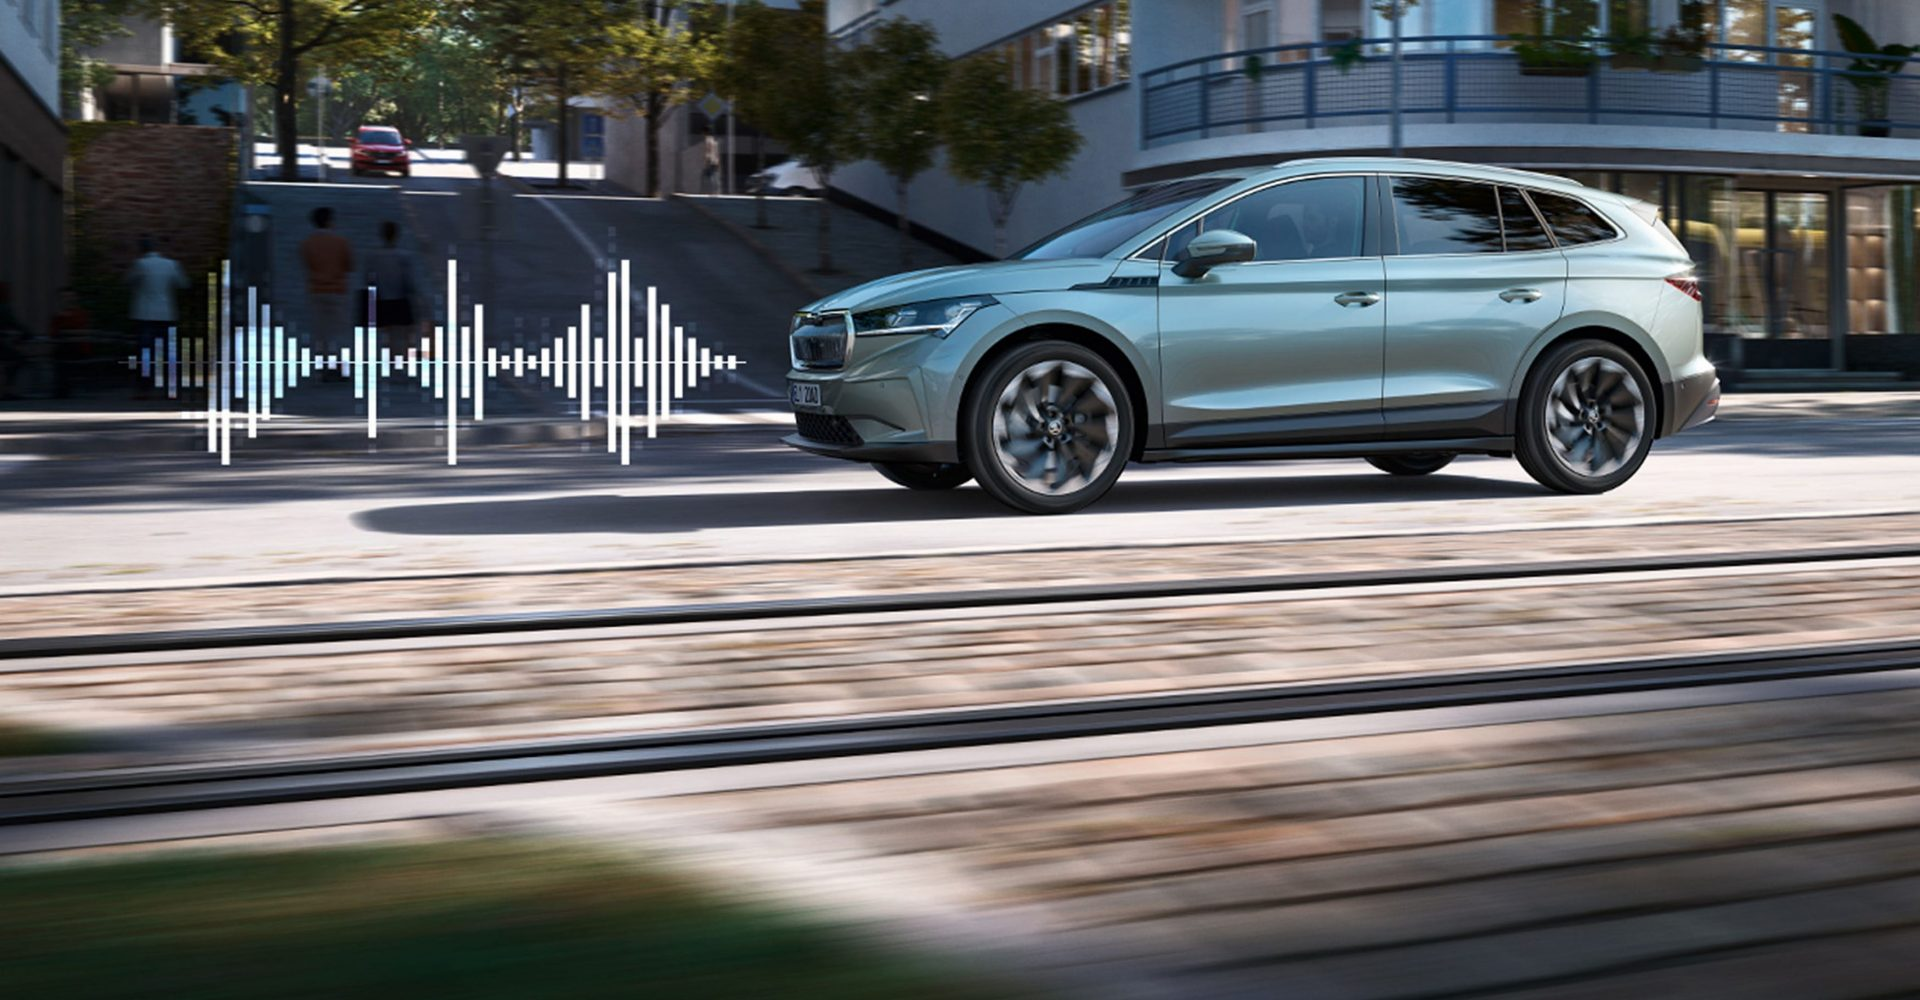 Skoda reveals 'acoustic signature' for the Enyaq electric vehicle